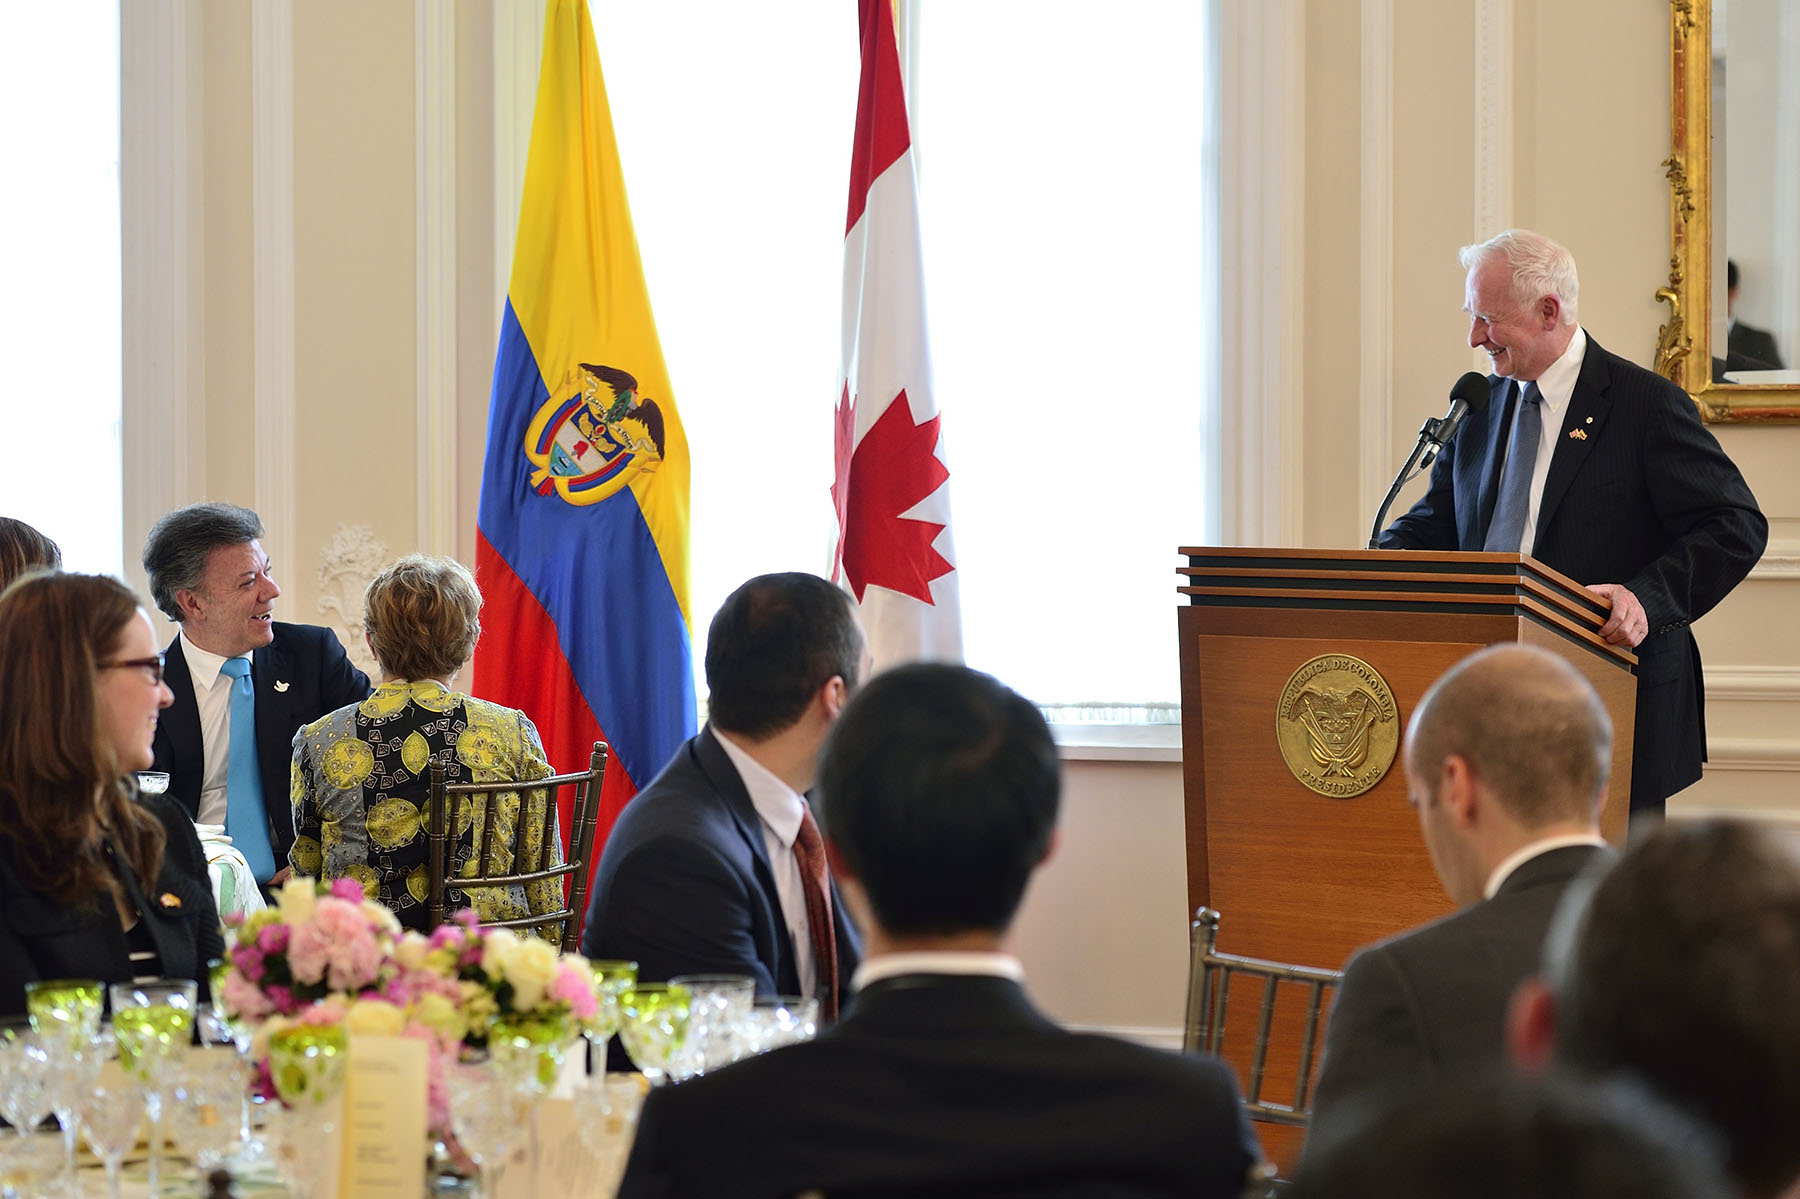 """Throughout my travel in Colombia, I hope to encourage young people here to come to Canada to study and to bring the message to Canadian youth that Colombia has much to offer in terms of learning opportunities,"" said His Excellency. ""Upon my return, and drawing from all that I will see in the coming days, I hope to encourage Canadian students to look further afield, and specifically to emerging markets like Colombia, for educational opportunities."""